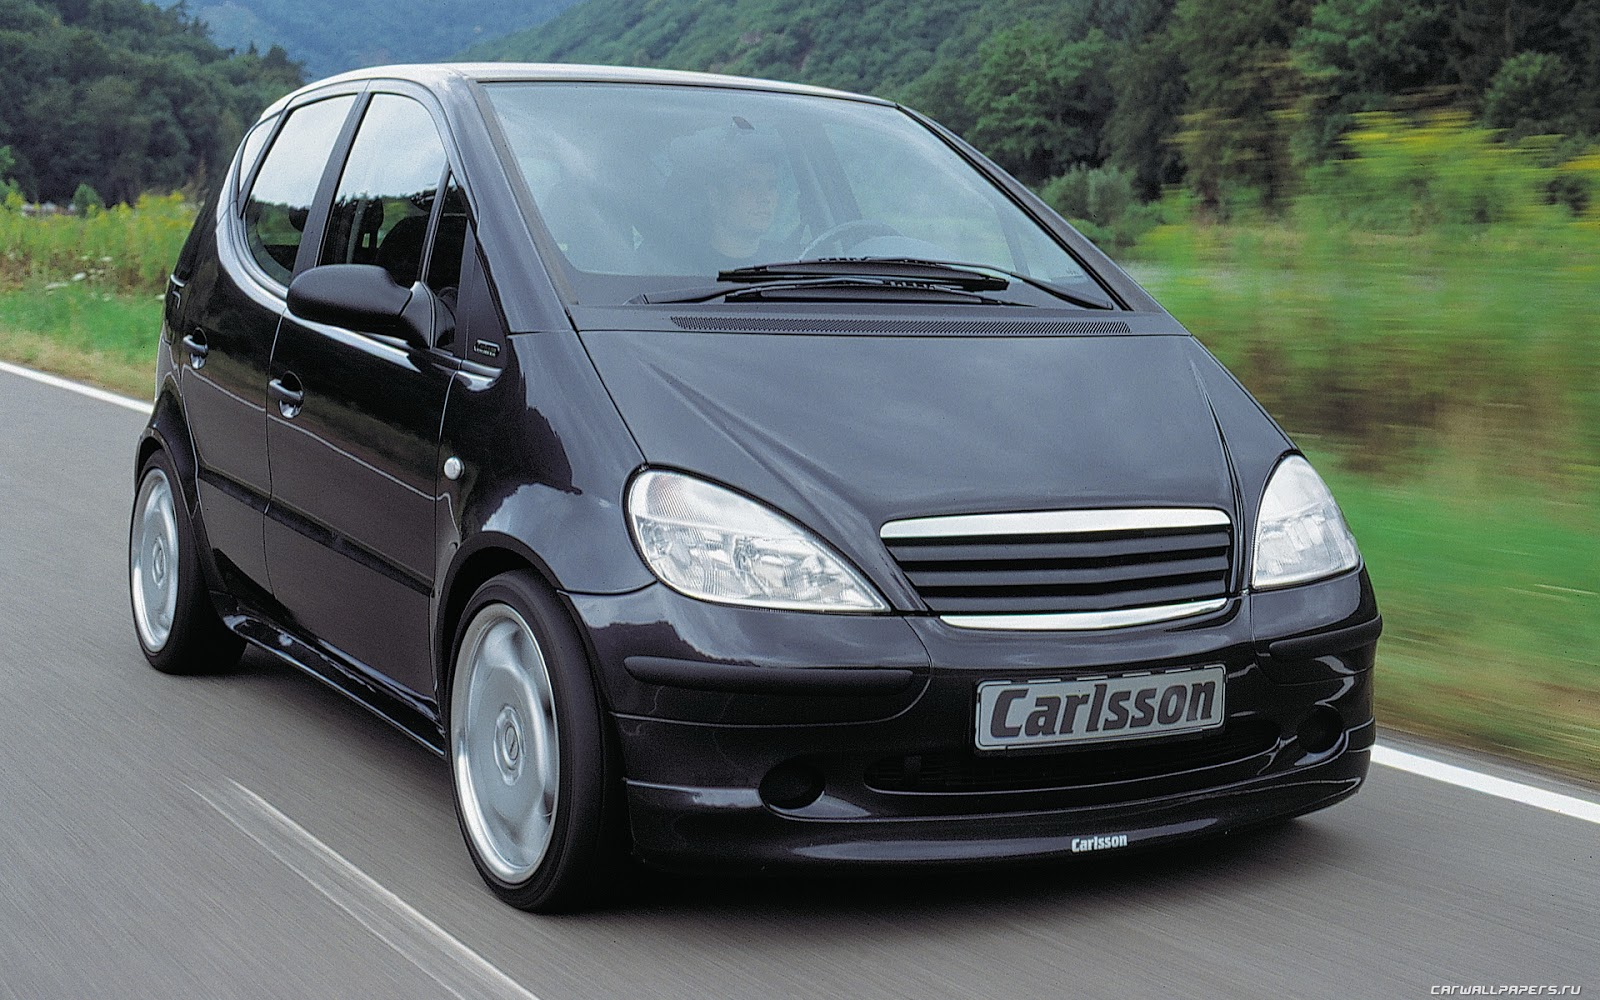 mercedes benz a class w168 a 170 cdi l 95 hp. Black Bedroom Furniture Sets. Home Design Ideas